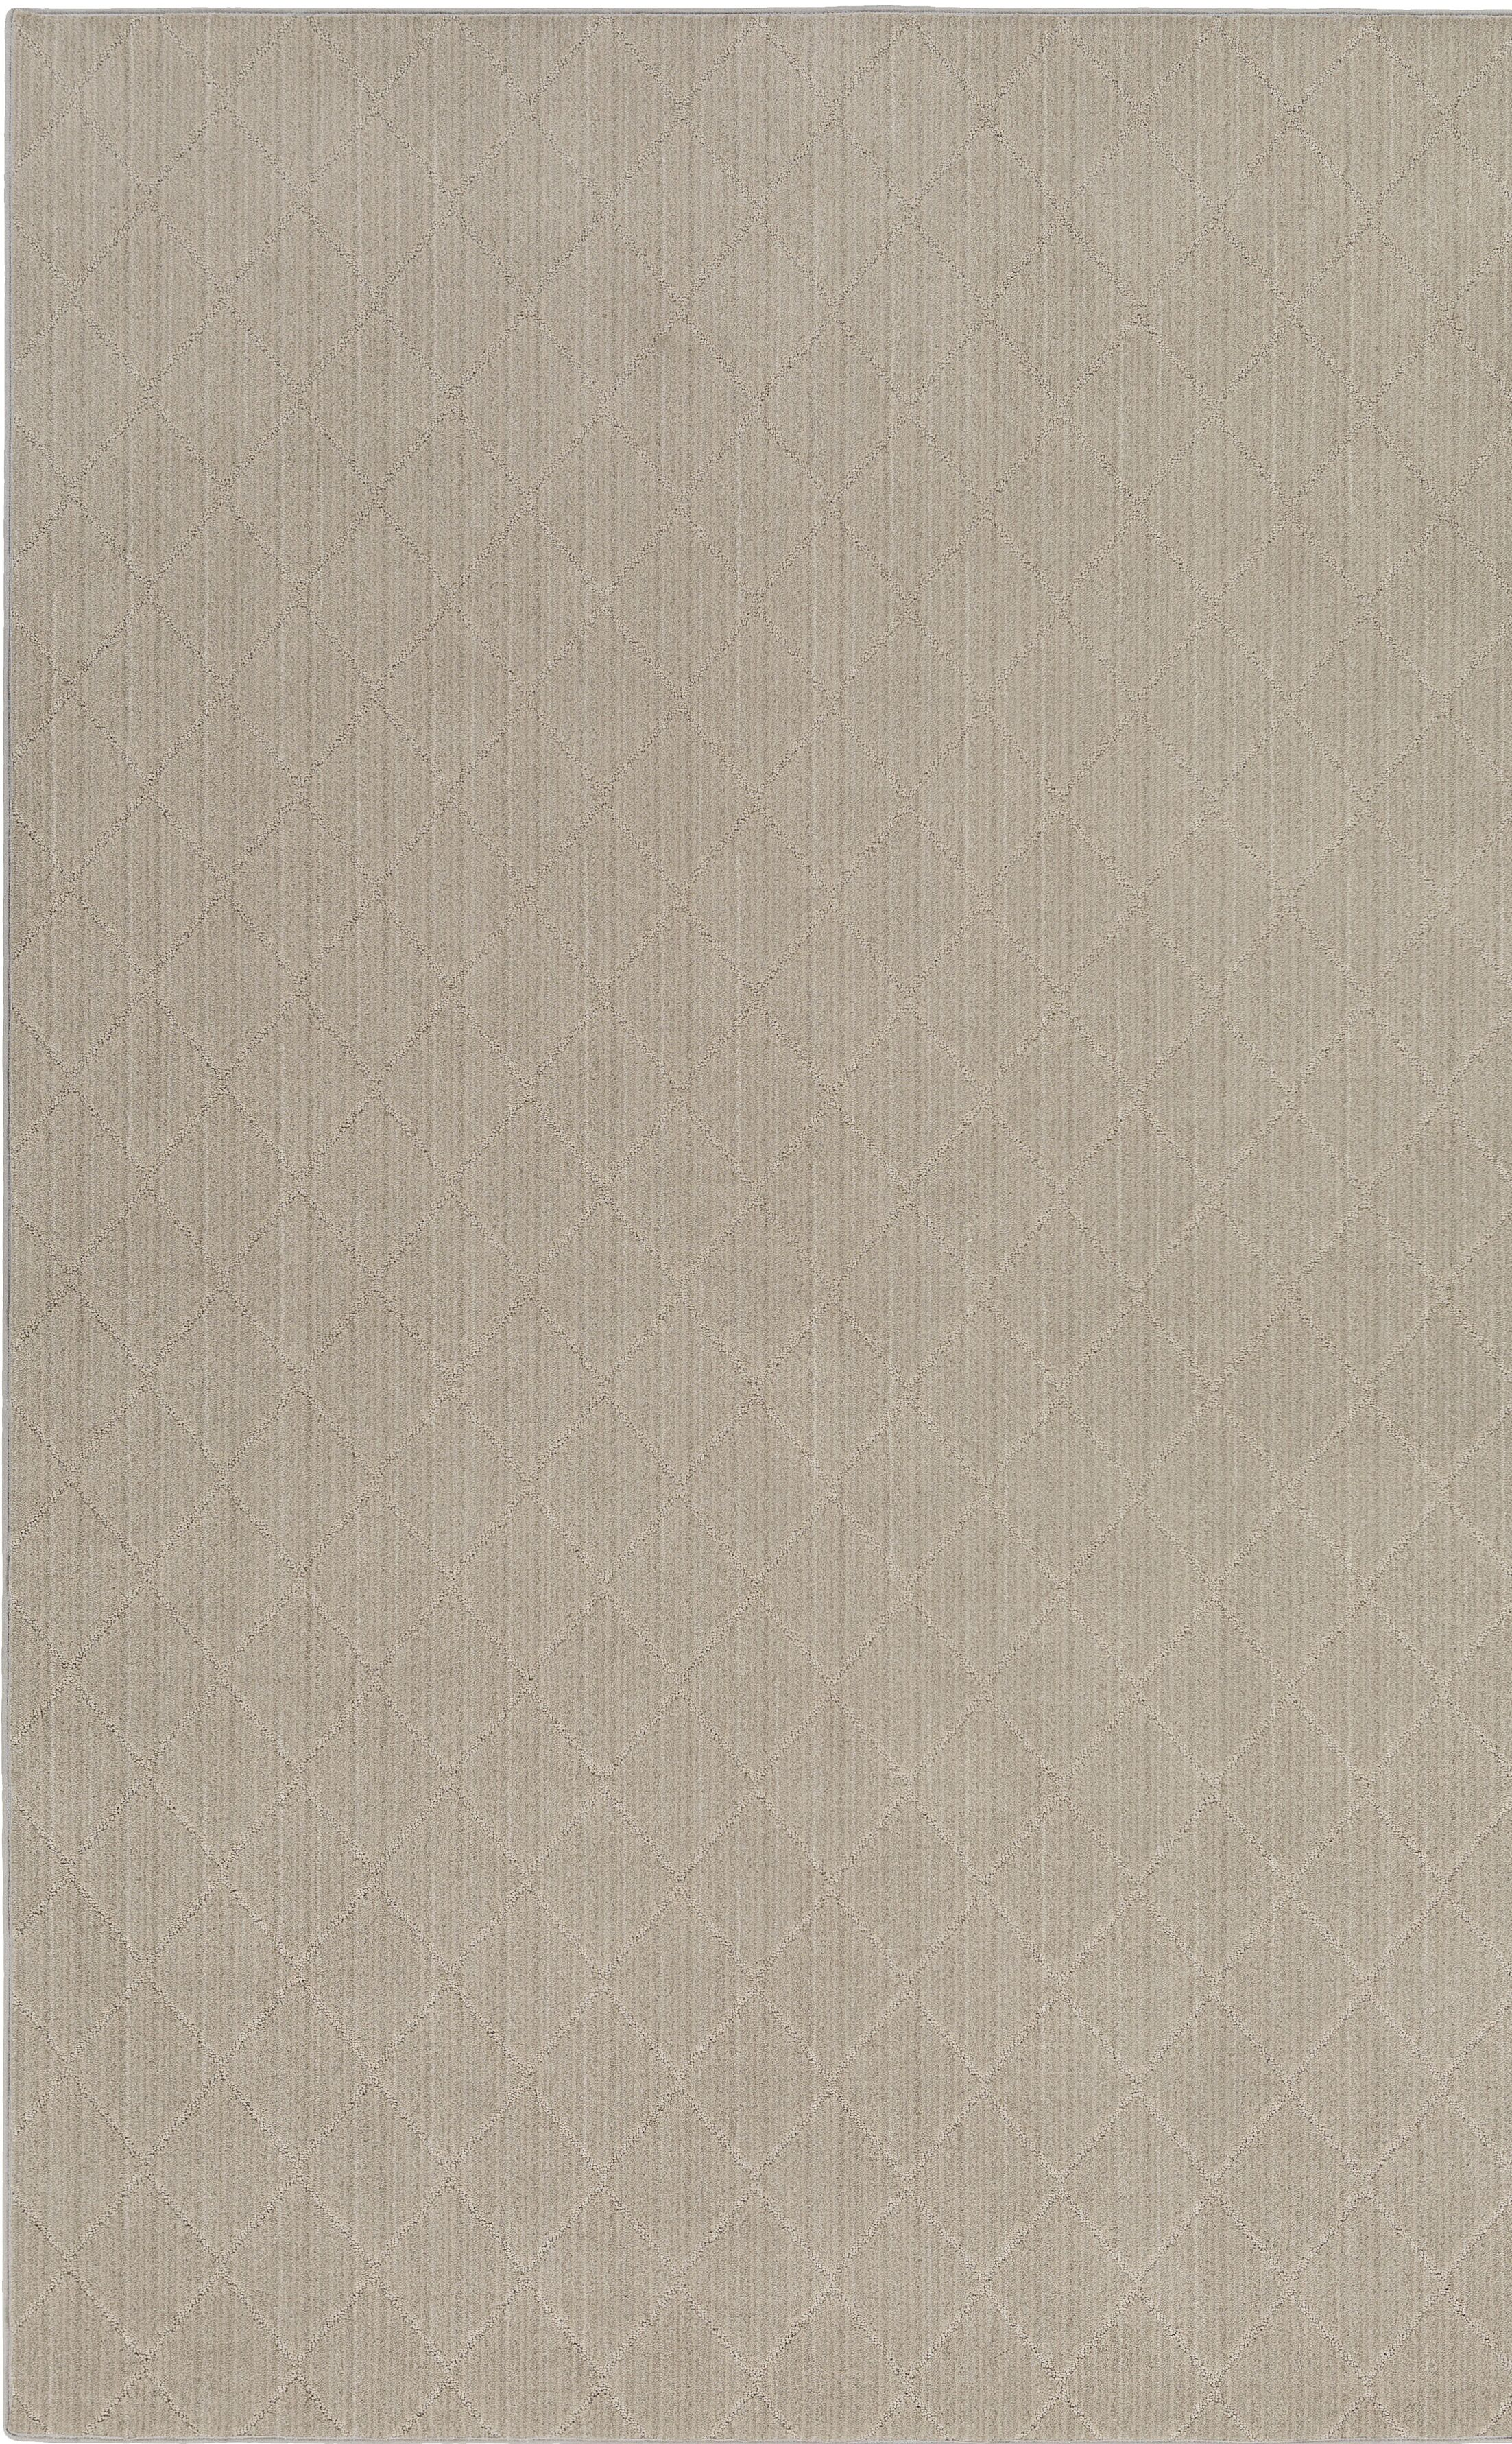 Huxley Gray Area Rug Rug Size: Rectangle 5' x 7'